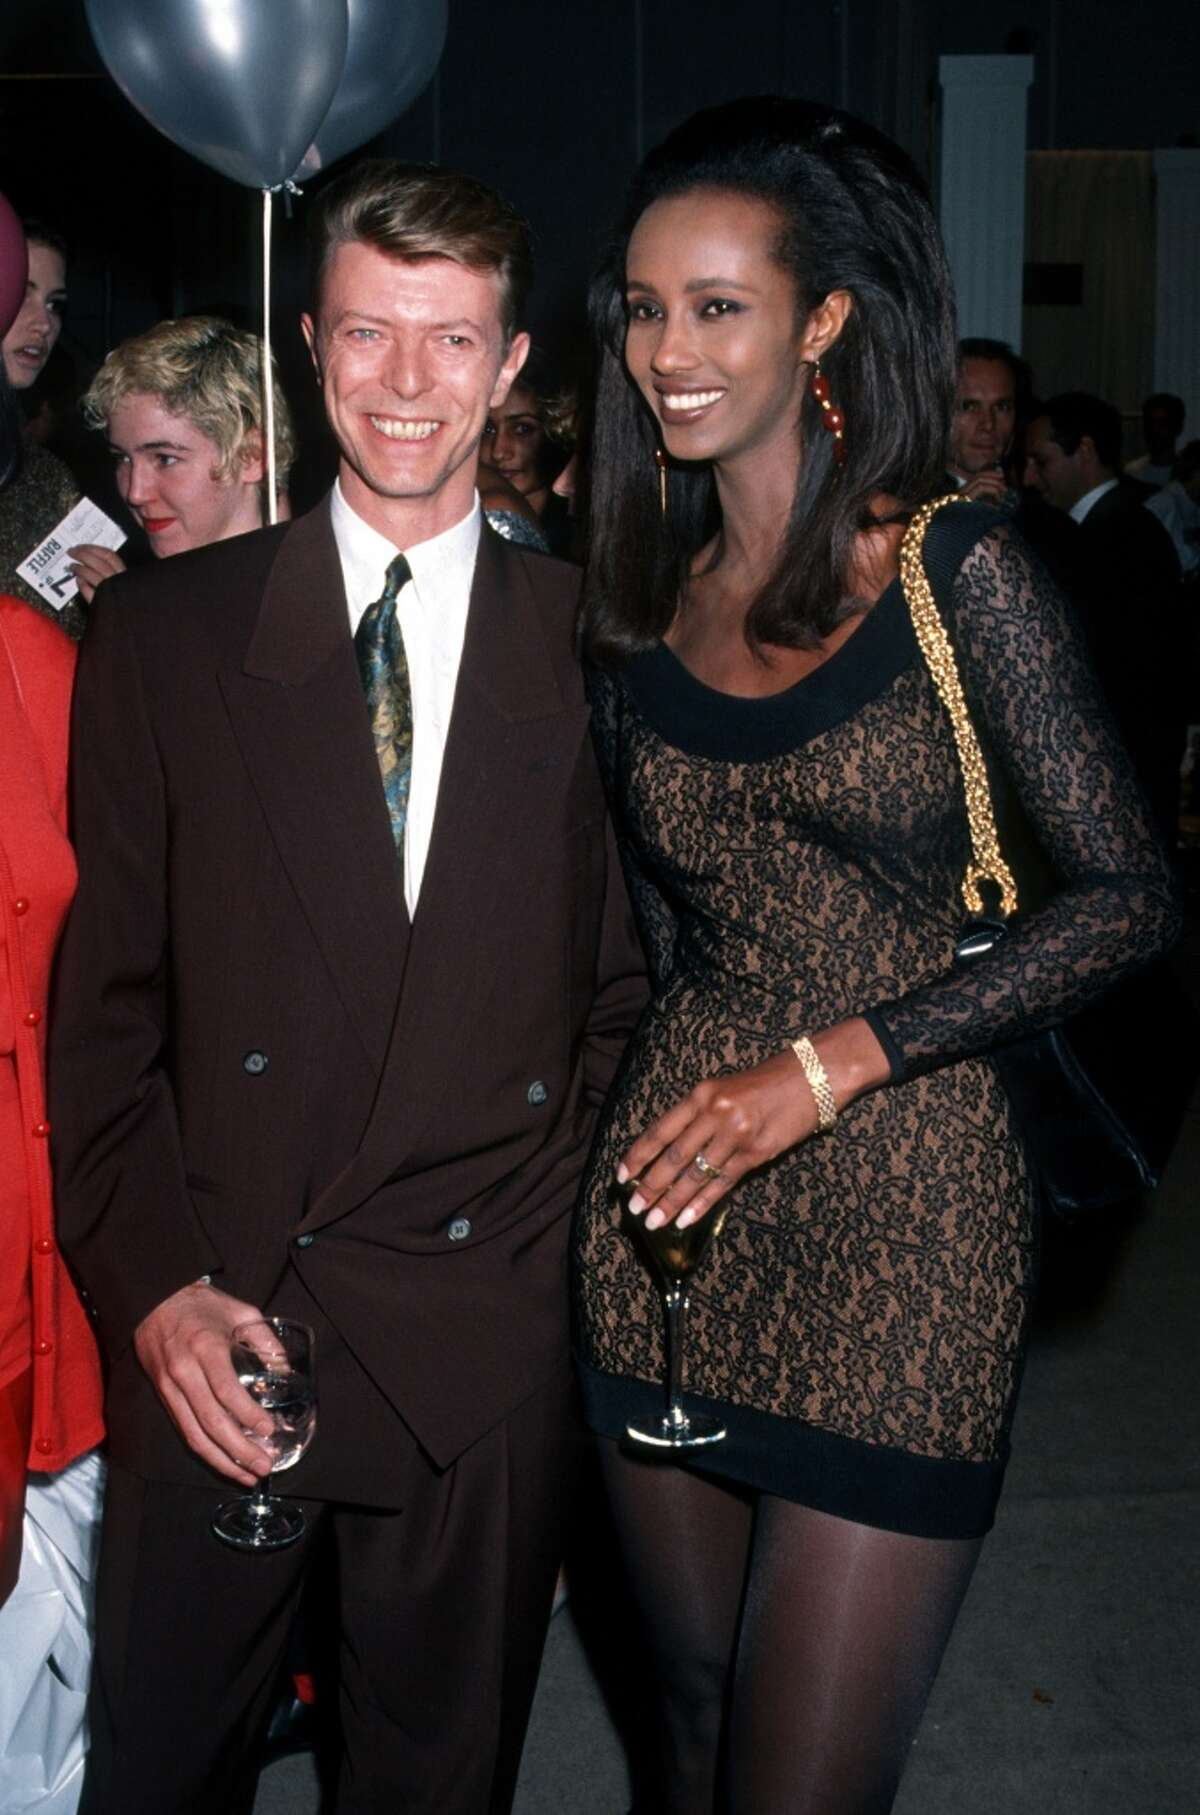 Iman and David Bowie in 1990.